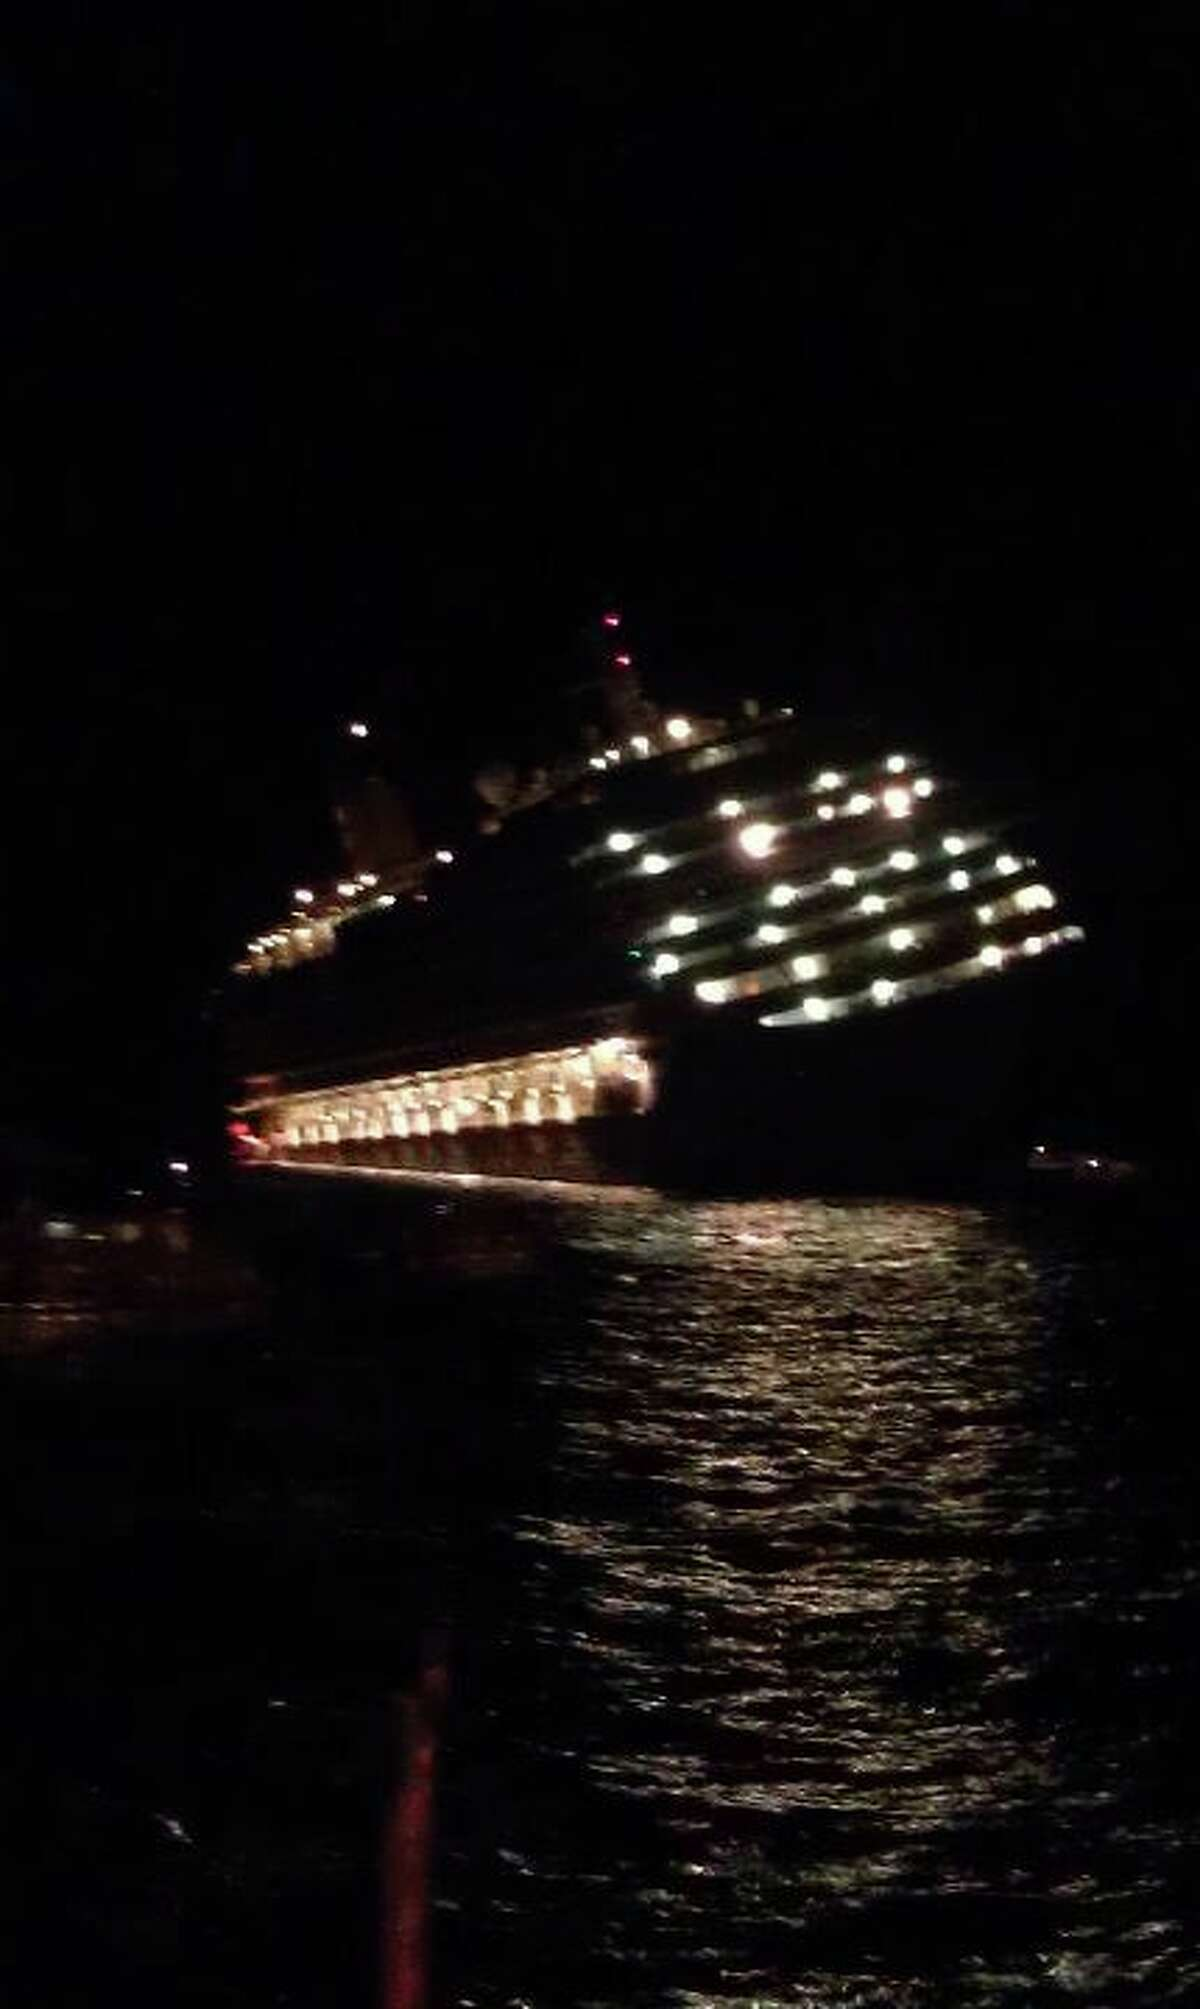 This photograph was taken by a Brian Aho and Joan Fleser, a Duanesburg couple who escaped with their daughter from the Costa Concordia after the cruise ship it started to sink off the coast of Italy on Friday, Jan. 13, 2012.